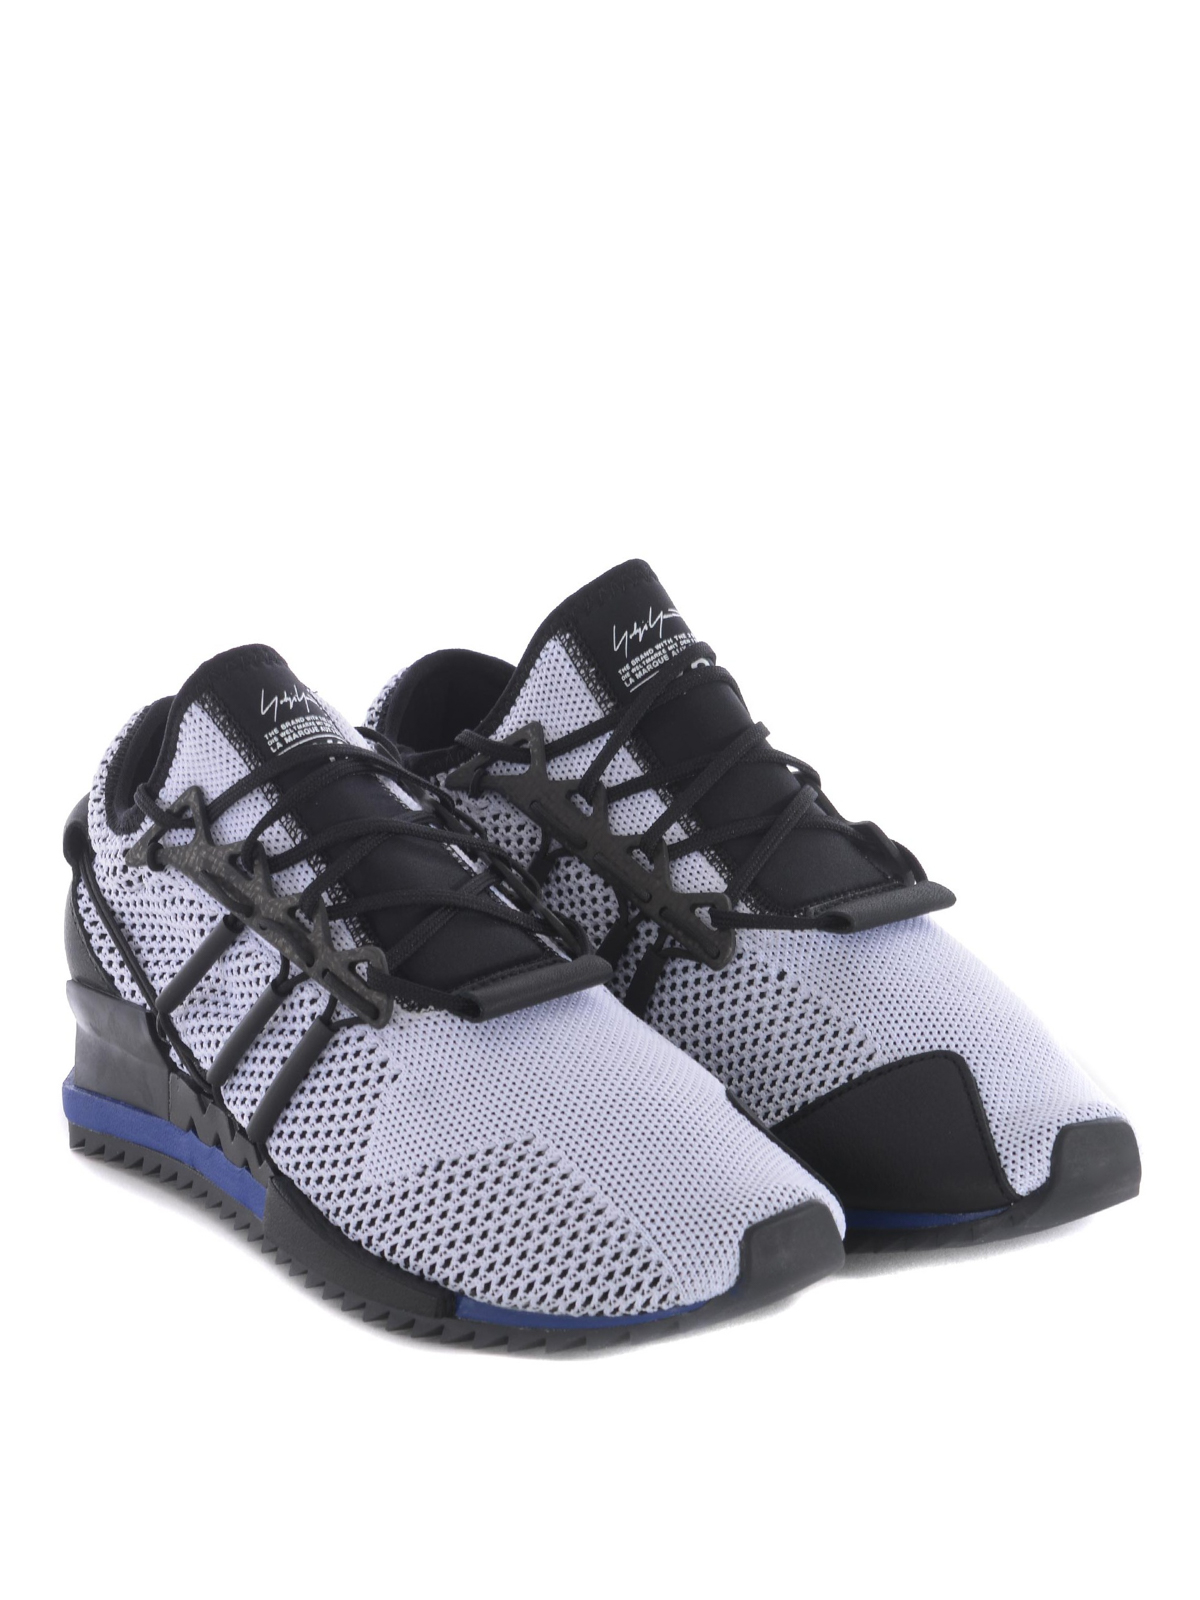 fcffd3a1839a5e ADIDAS Y-3  trainers online - Harigane primeknit white sneakers